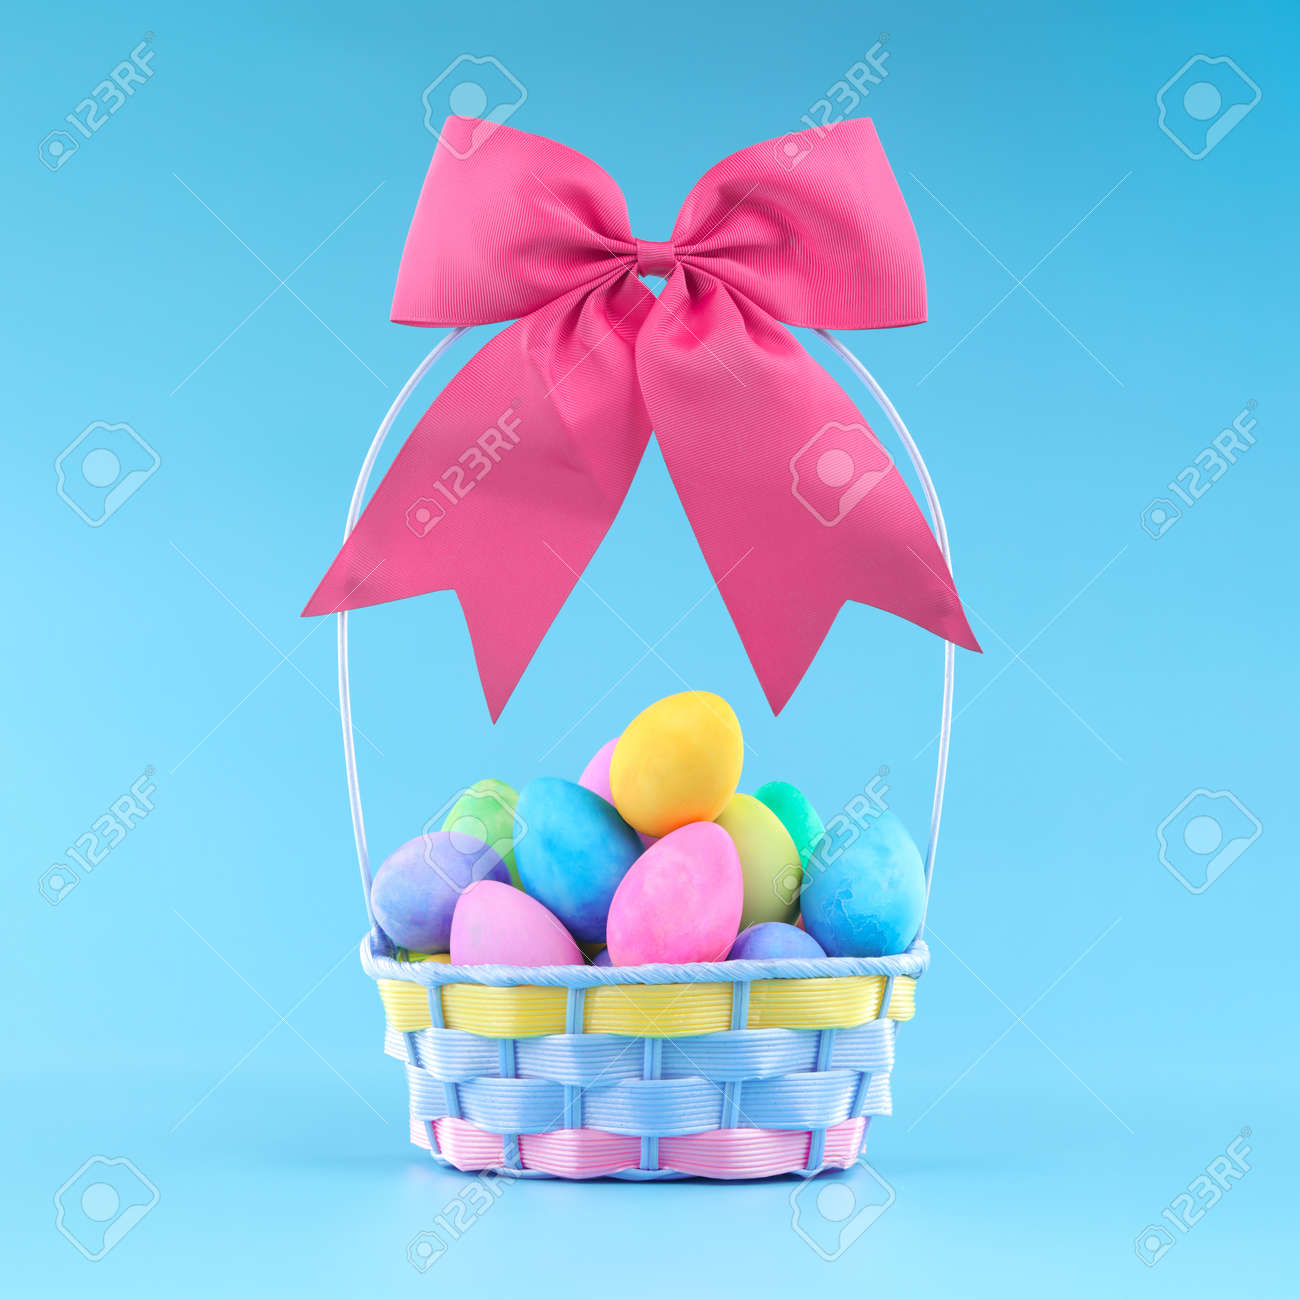 Easter basket for Easter egg hunt filled with colorful painted Easter eggs, topped with a pink bow. - 166138549